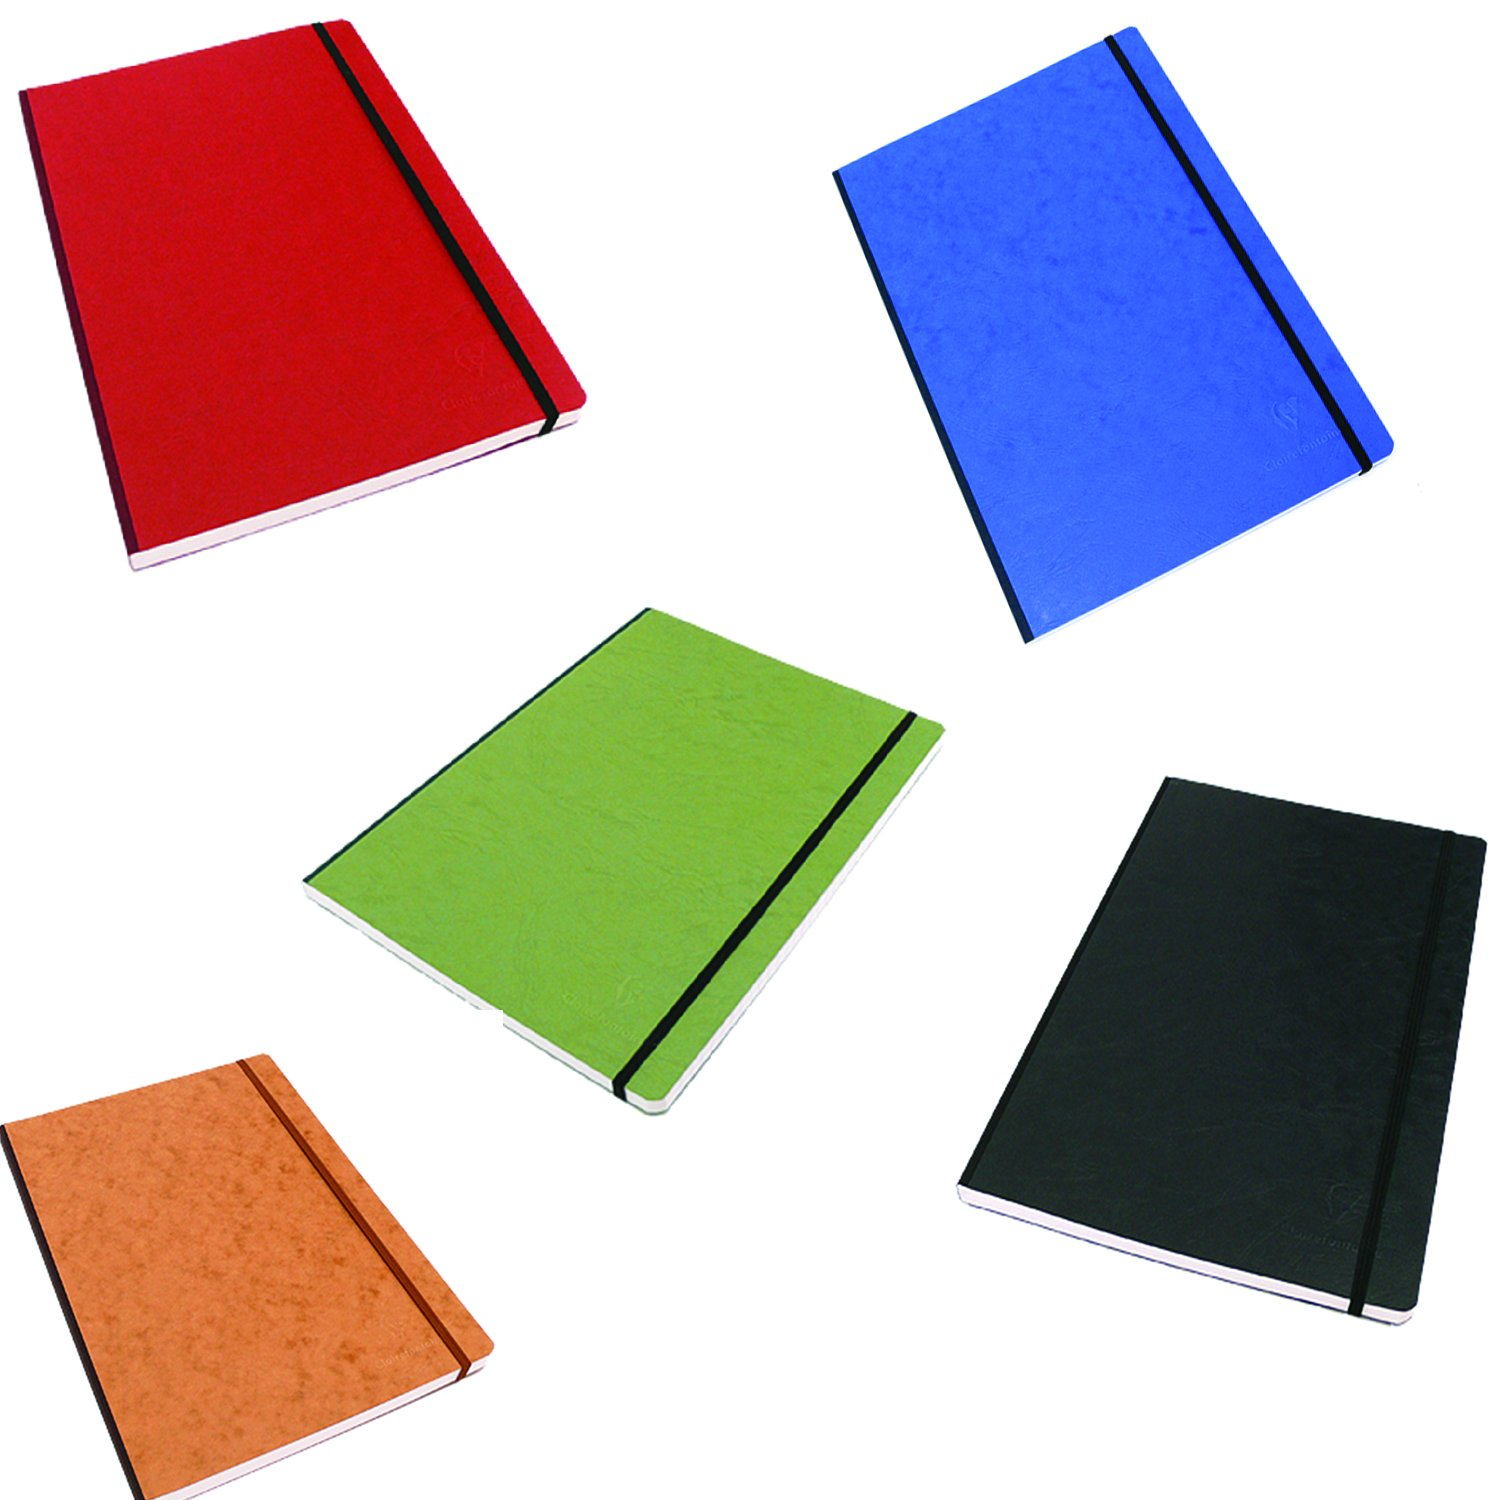 Pack of 5 Clairefontaine Basic Large Clothbound Notebook (8 1/4''x 11 3/4'') Black, Blue,Green, Red and Tan 192 Pages by Clairefontaine